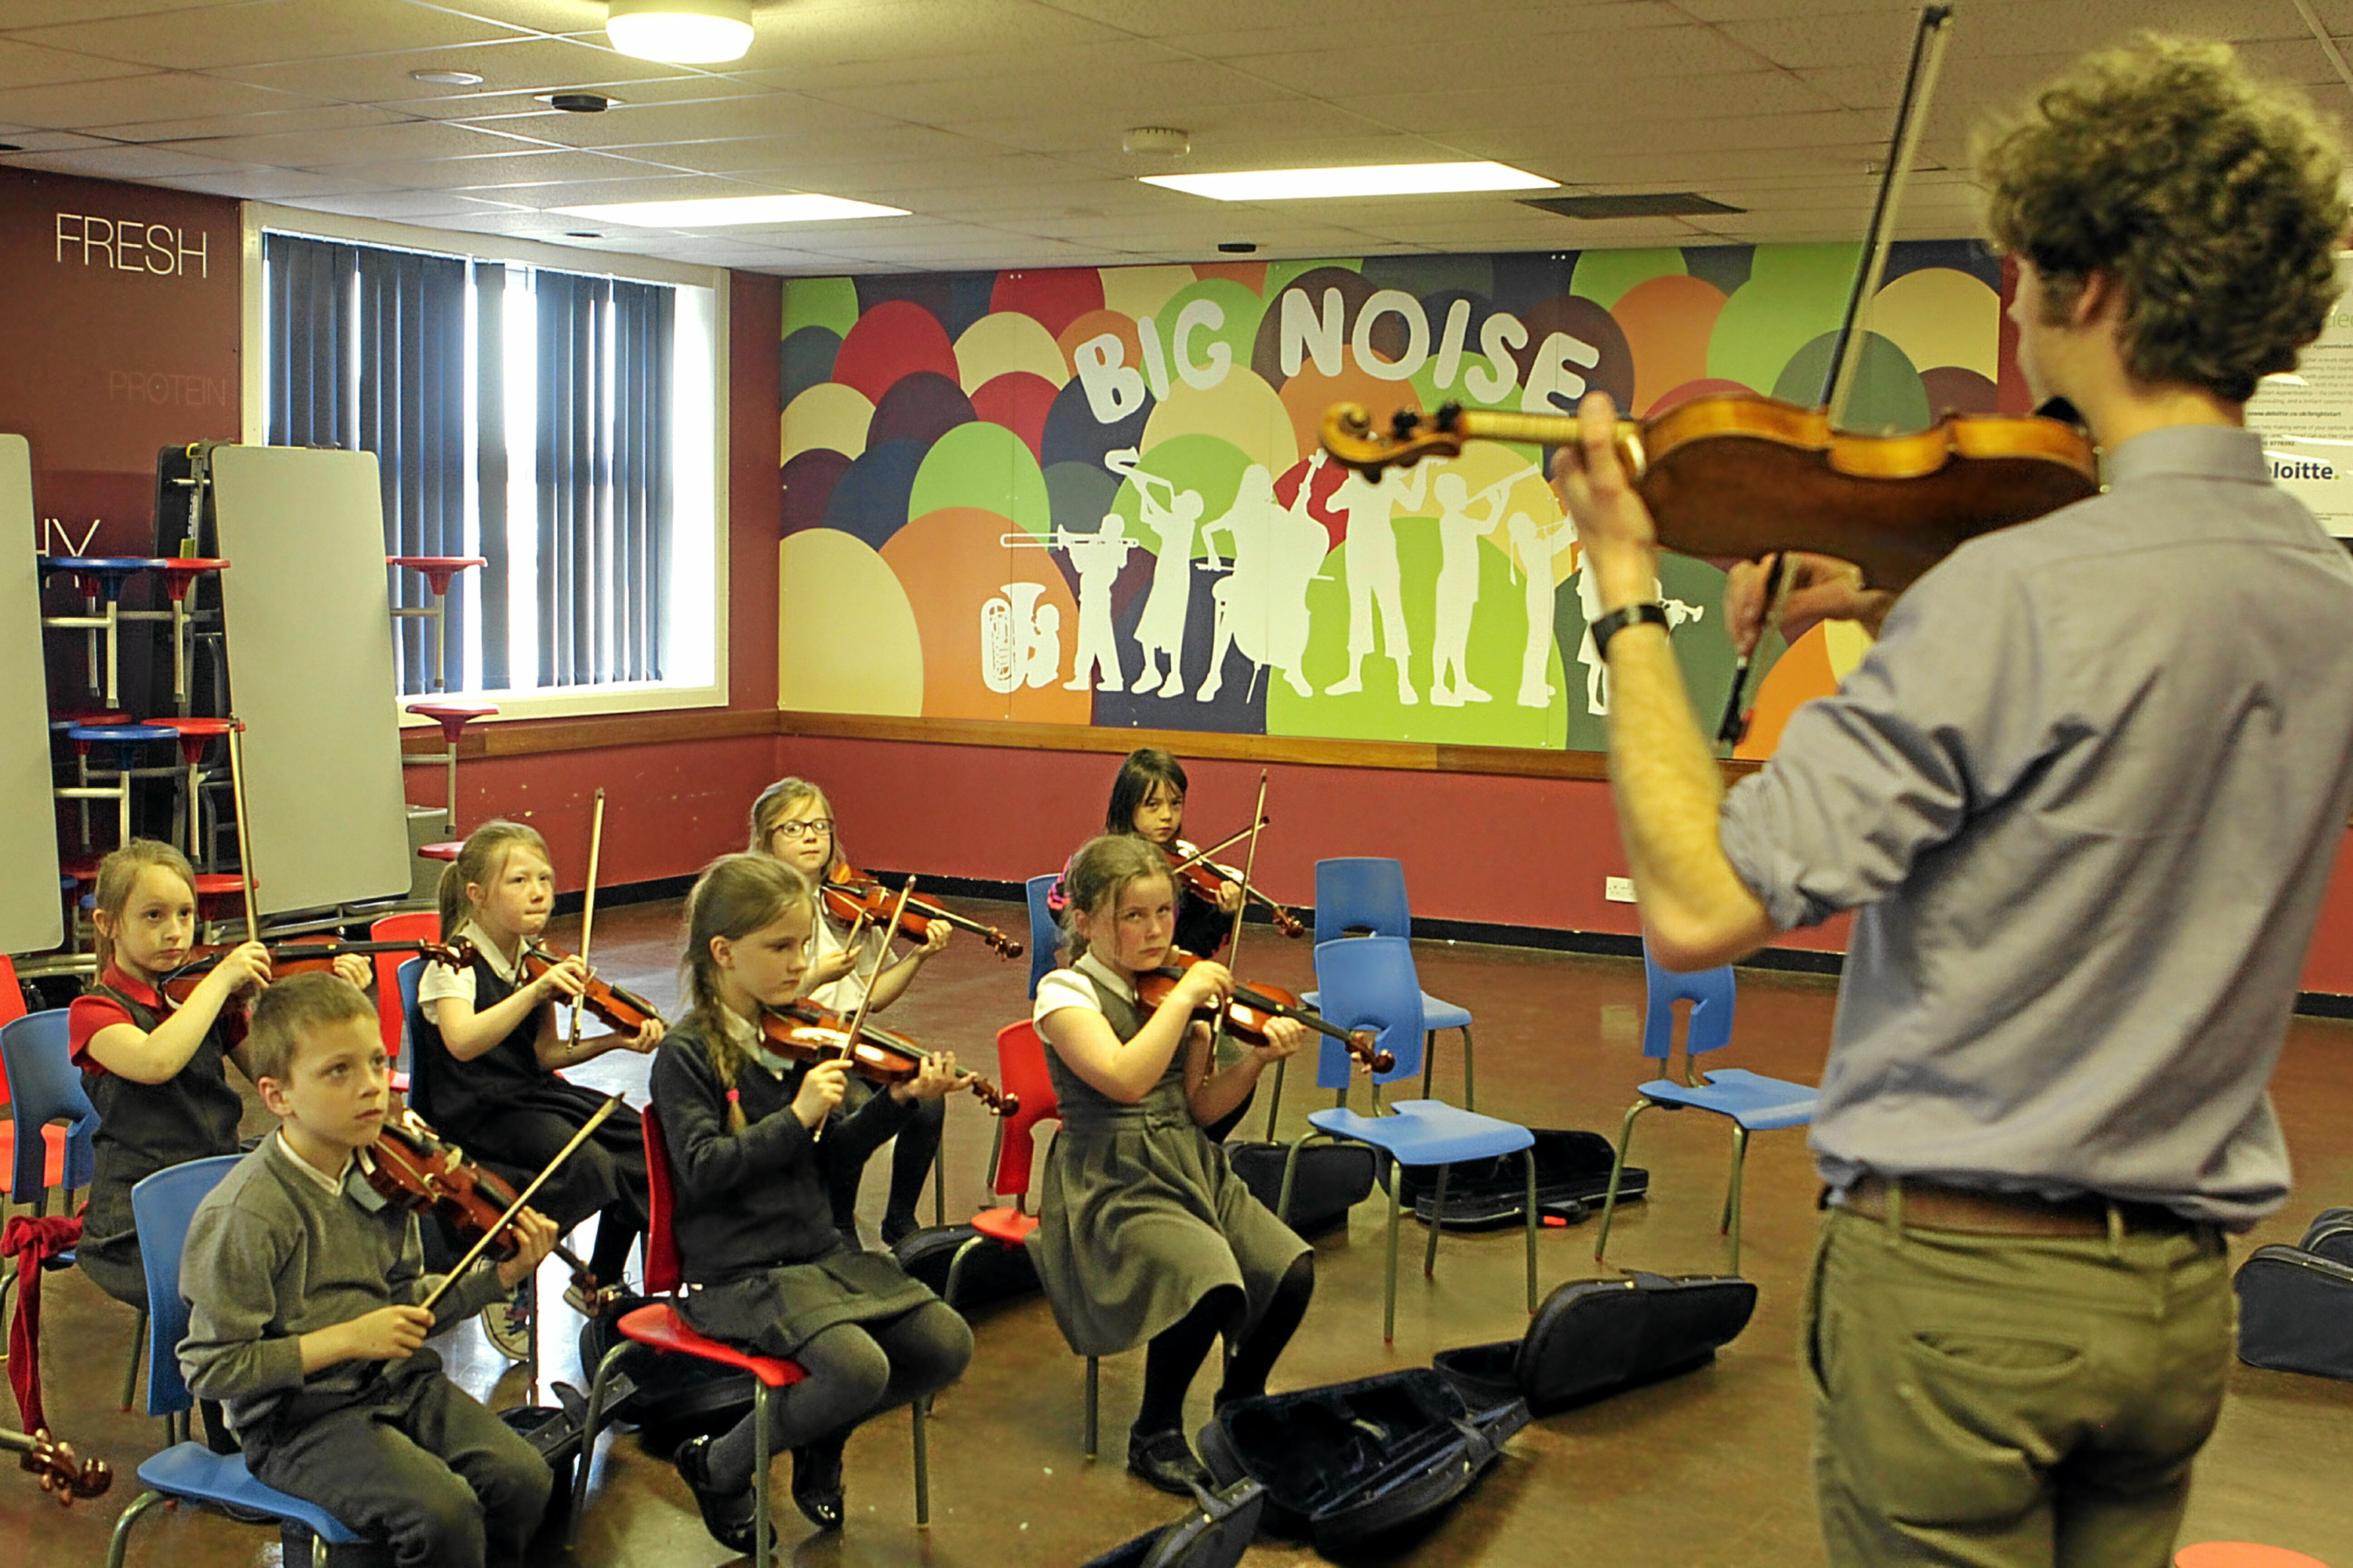 Gordon Robbie Evening Telegraph Big Noise Torry at Torry Academy Aberdeen  violins with Frances  Moore Collyer